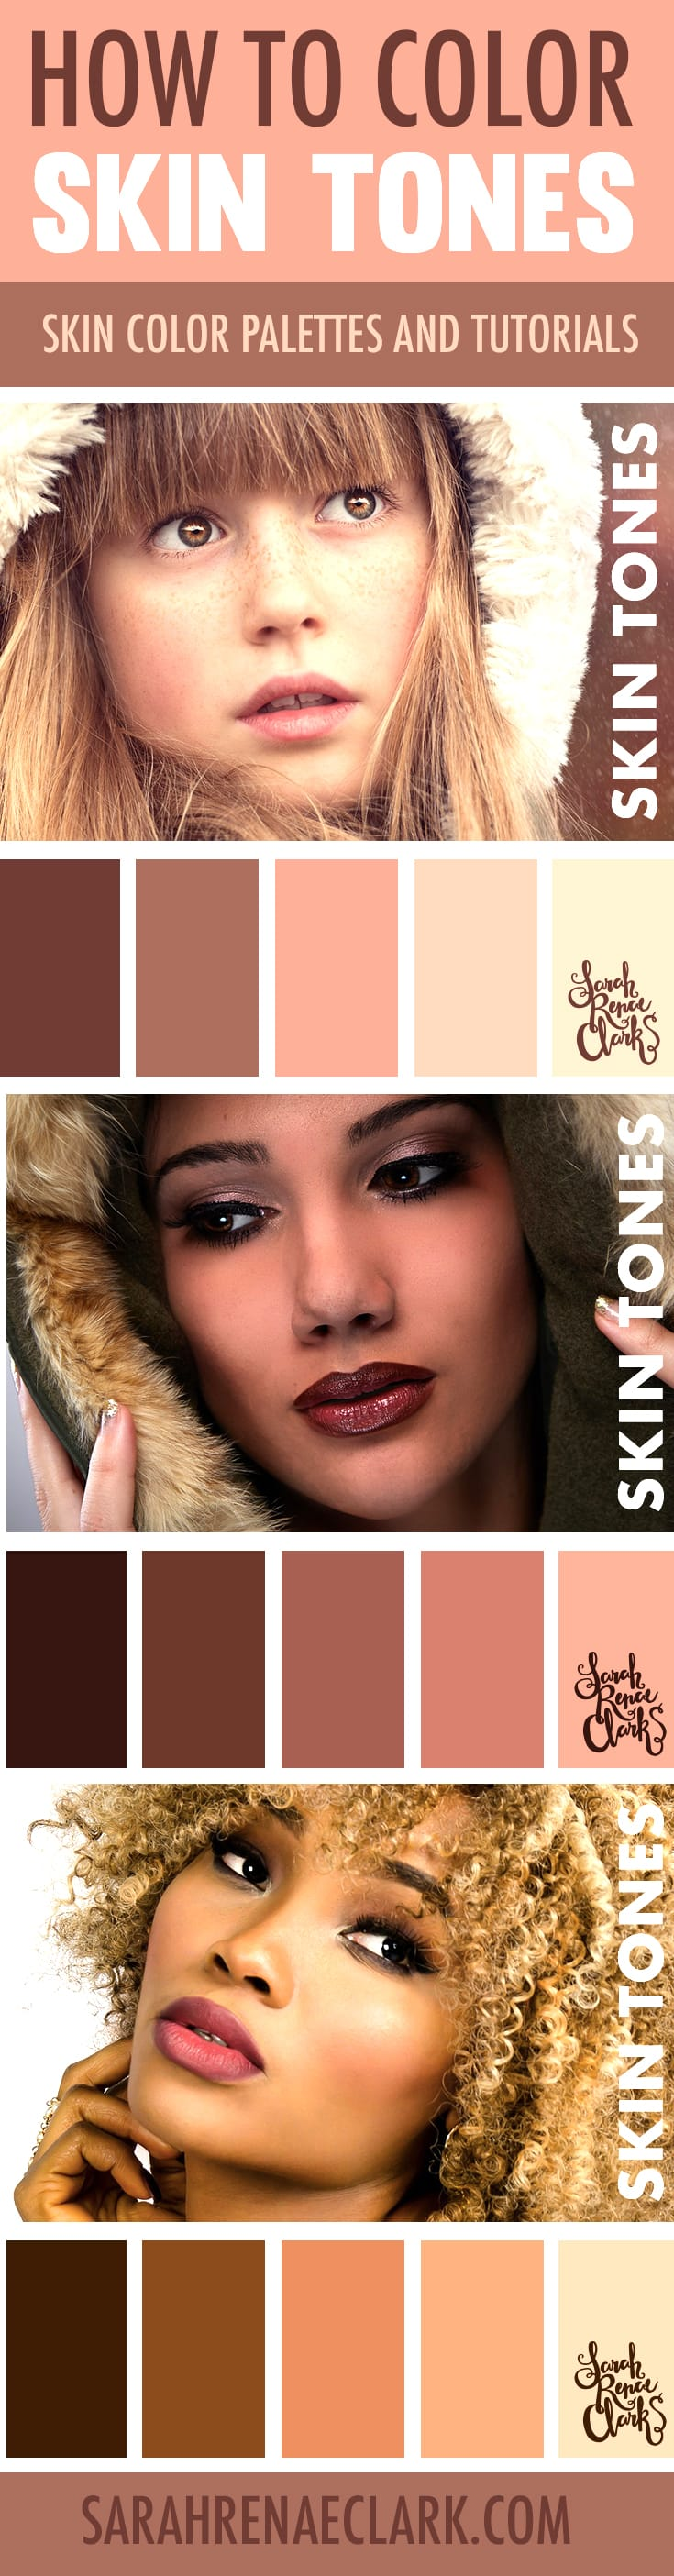 How to Color Skin Tones | 10 Video Tutorials on Skin Coloring ...